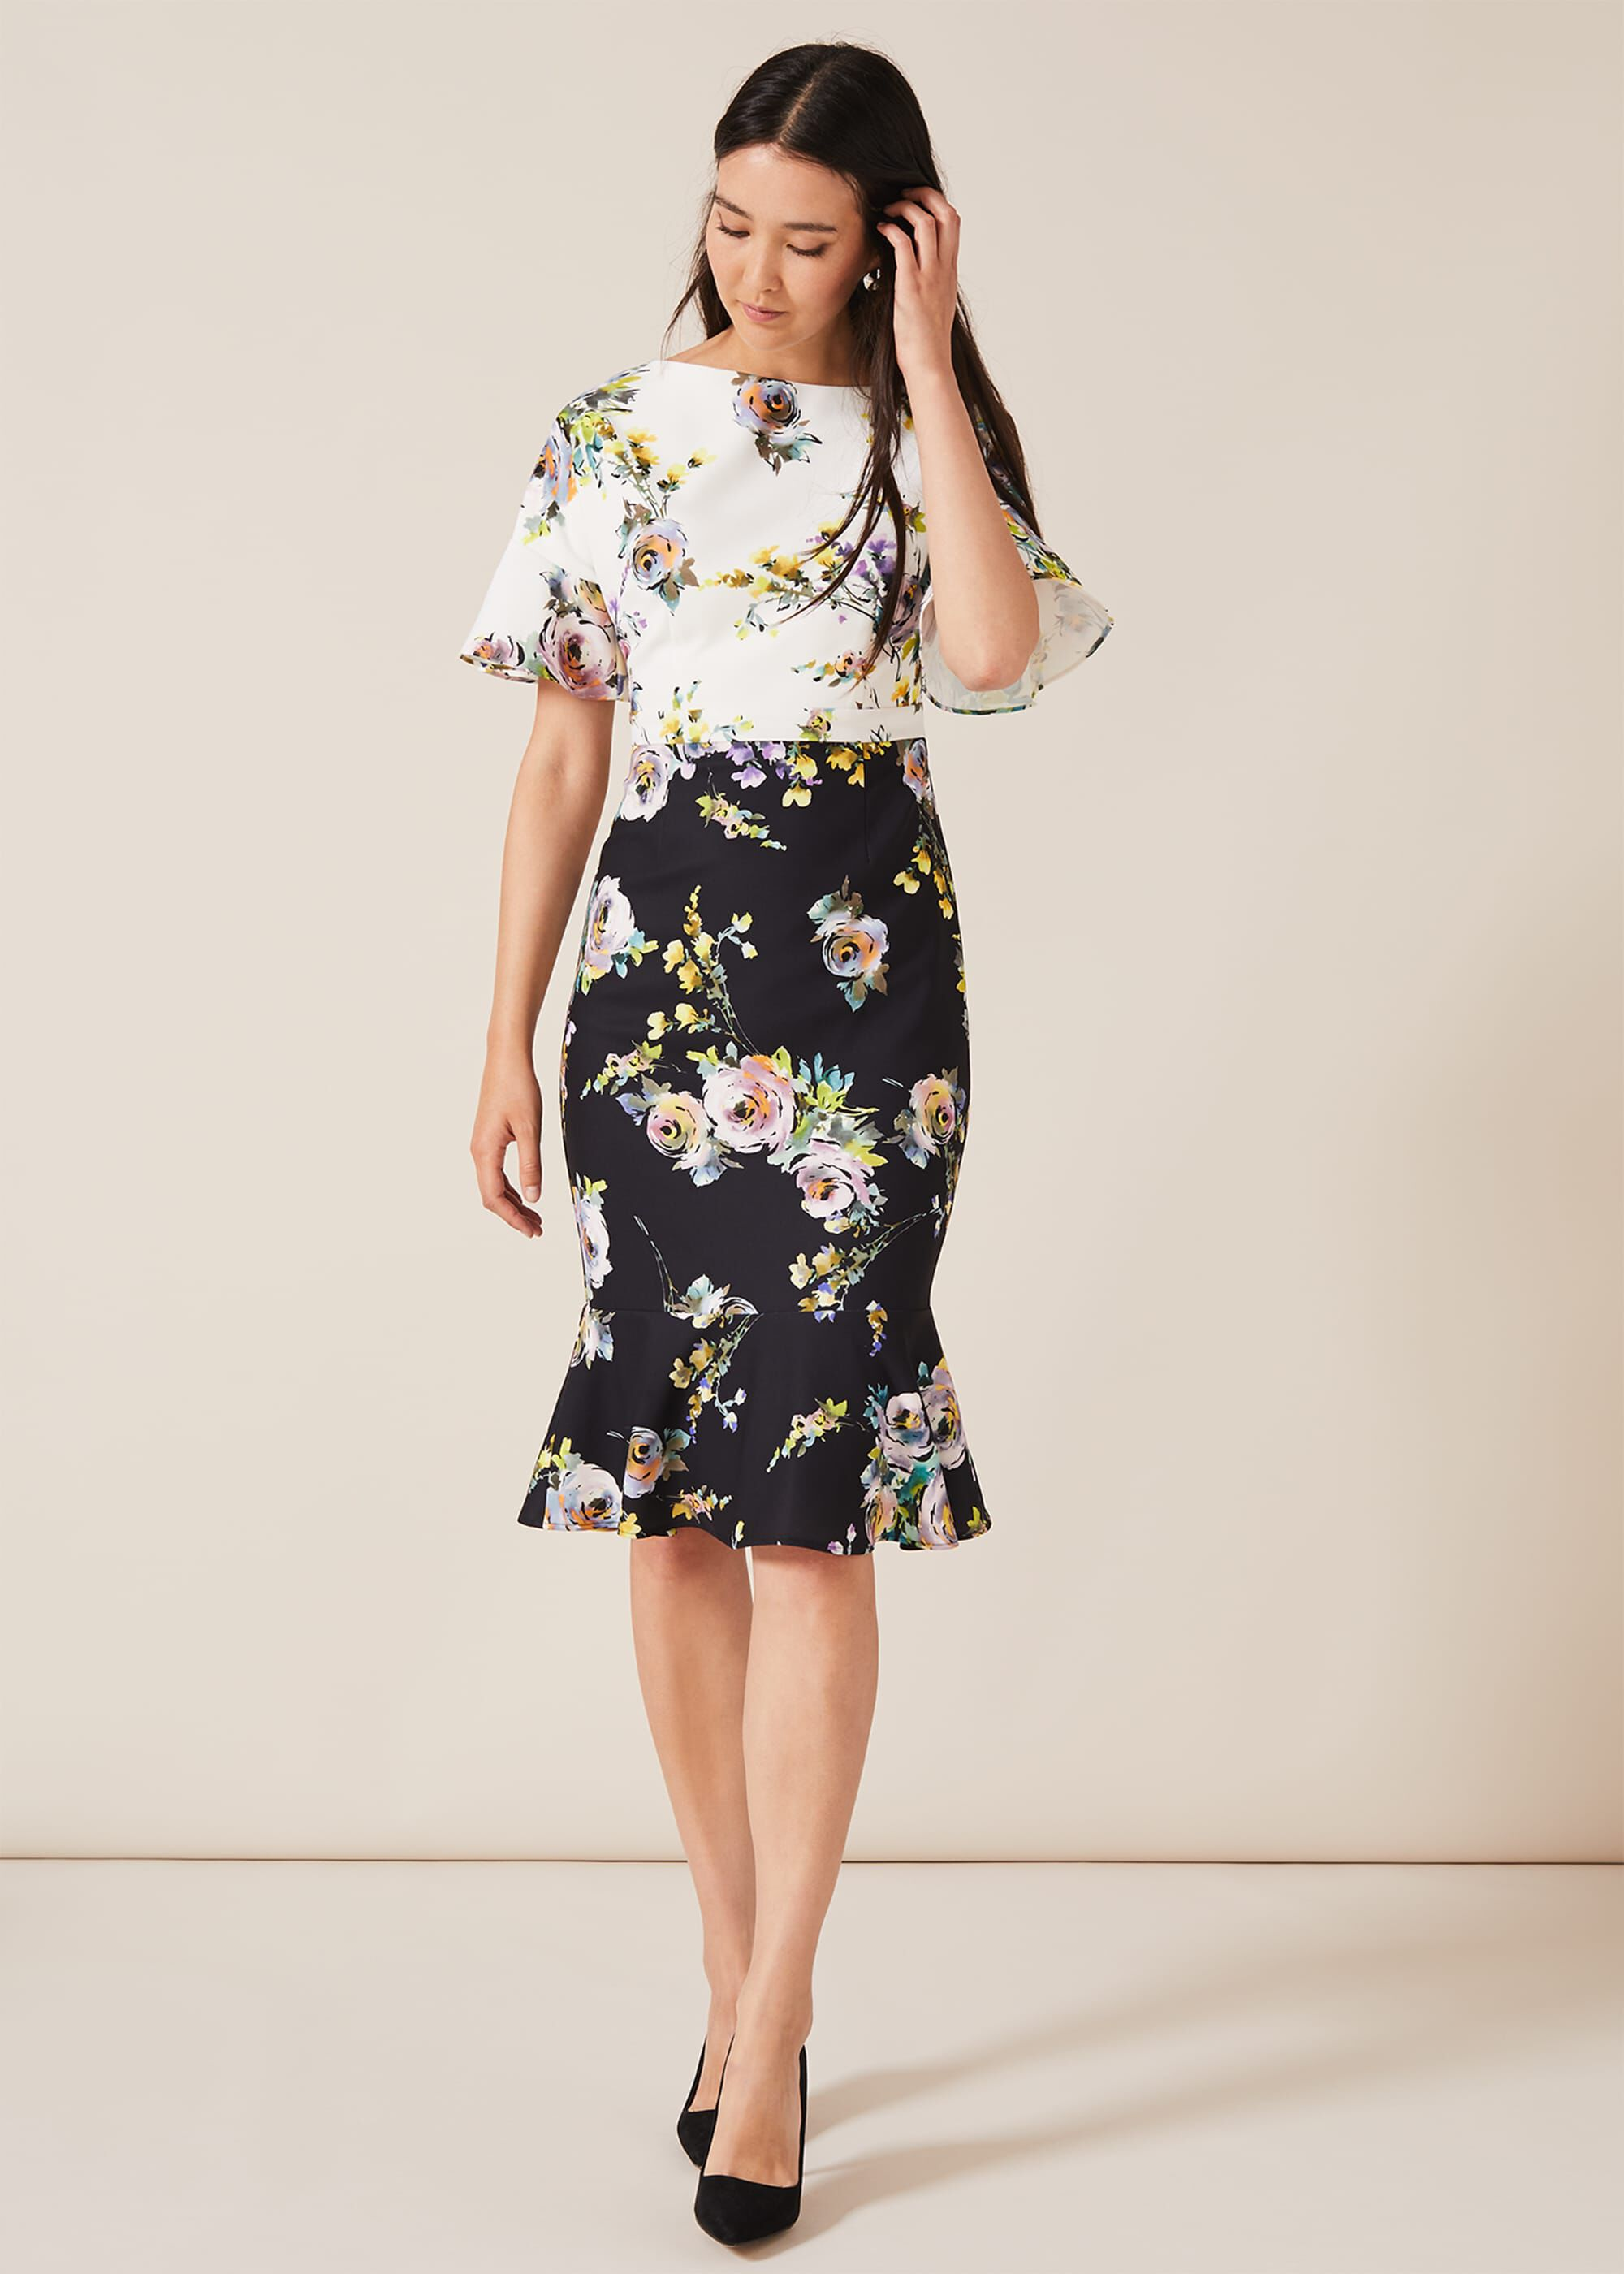 Phase Eight Anita Floral Dress, Cream, Fitted